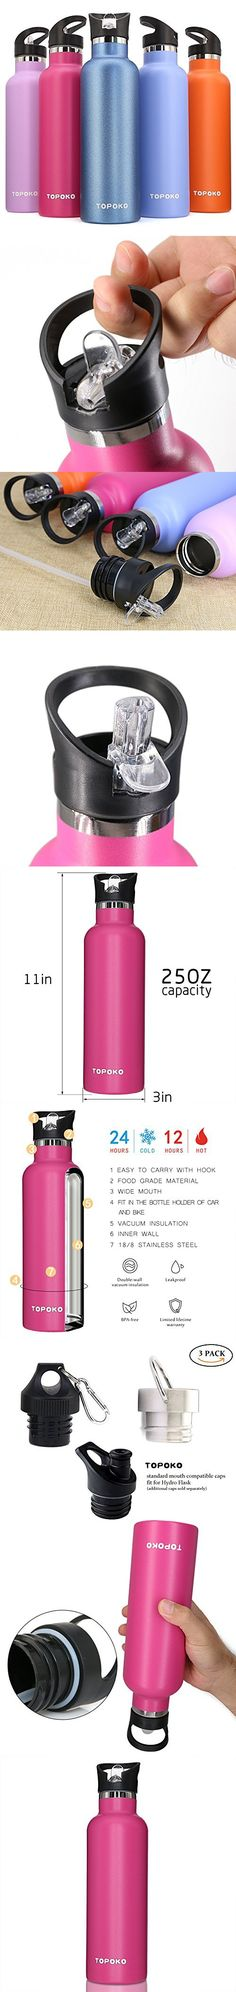 25 OZ Vacuum Insulated Stainless Steel Double Wall Leak Proof BPA Free Sport Bottle Rose with Straw lid